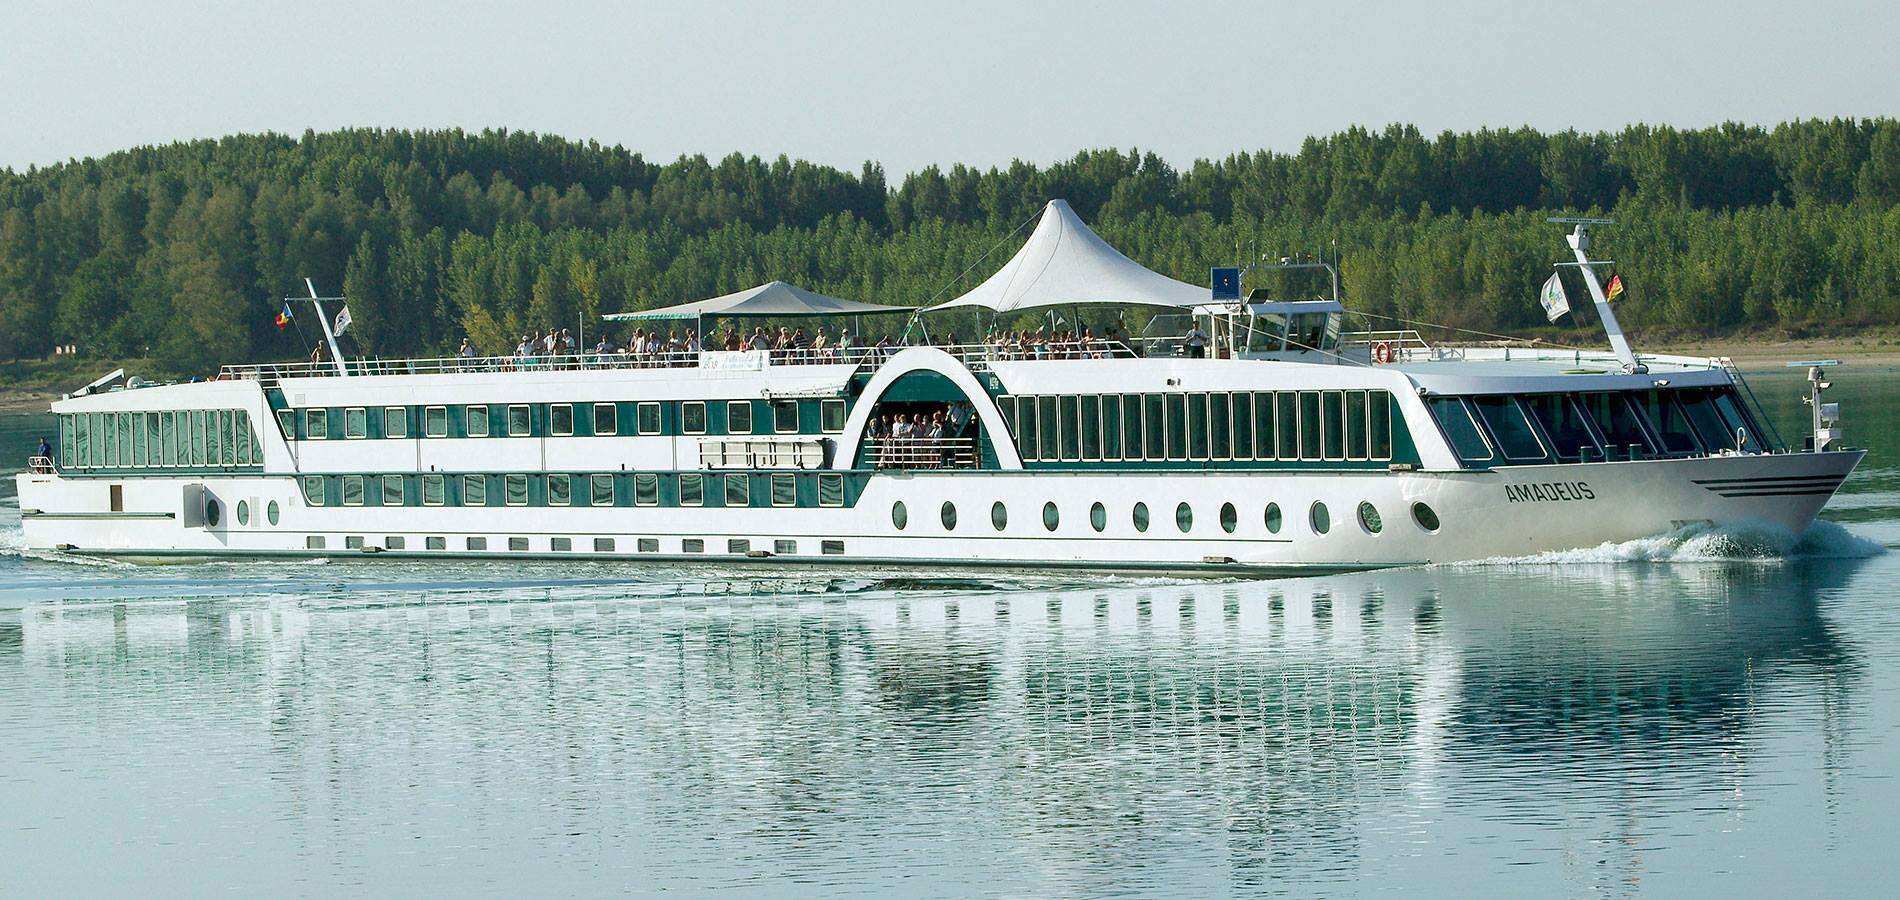 Transylvania Land and River Cruise Tour August 2020